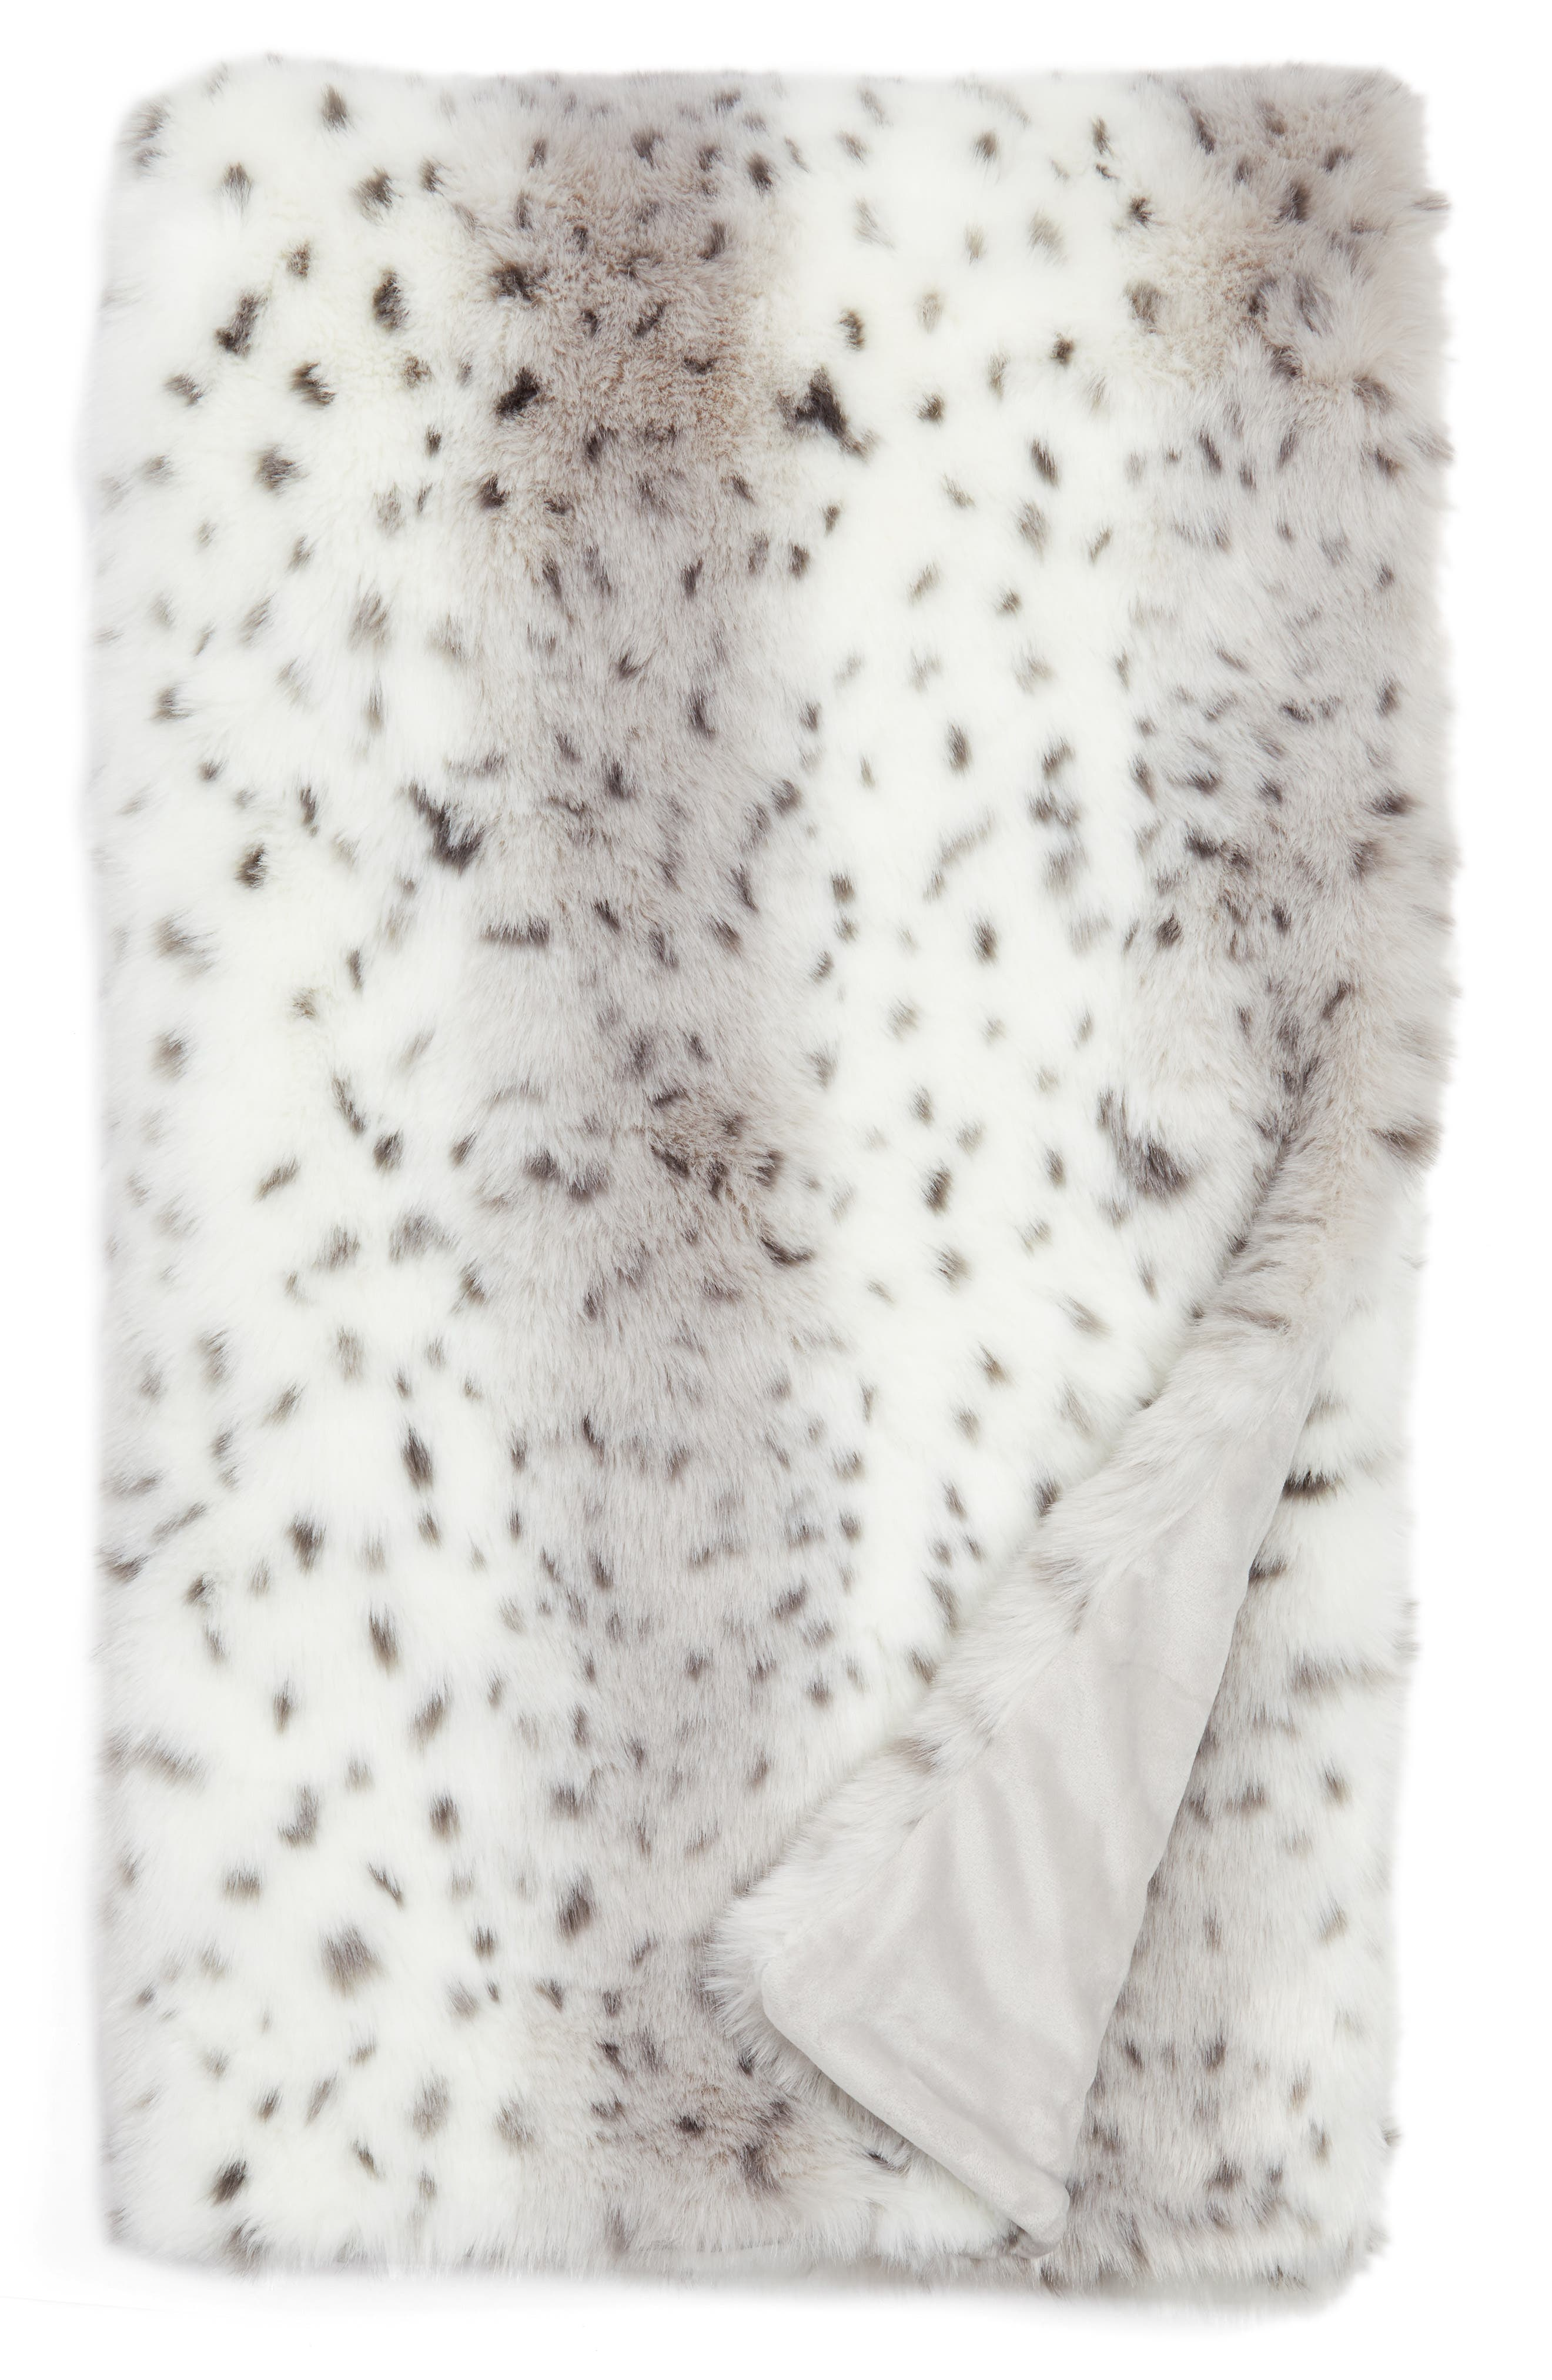 Nordstrom at Home Snow Leopard Faux Fur Throw